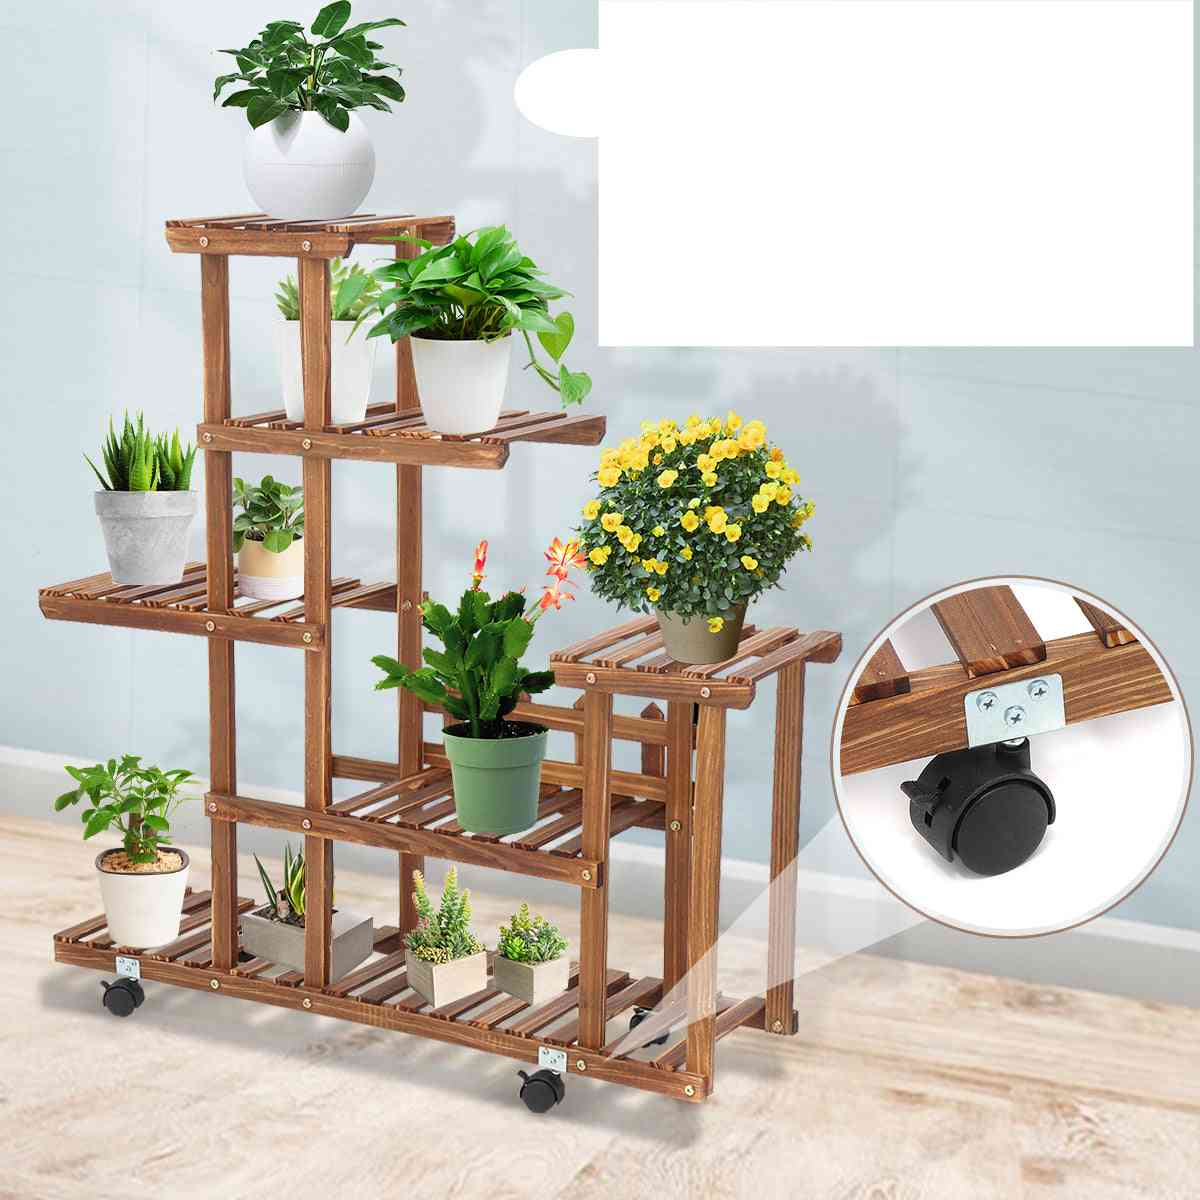 5 Tiers Wooden Flower Rack Plant Stand Multi Flower Stand Shelves & Display Shelf/flower Stands